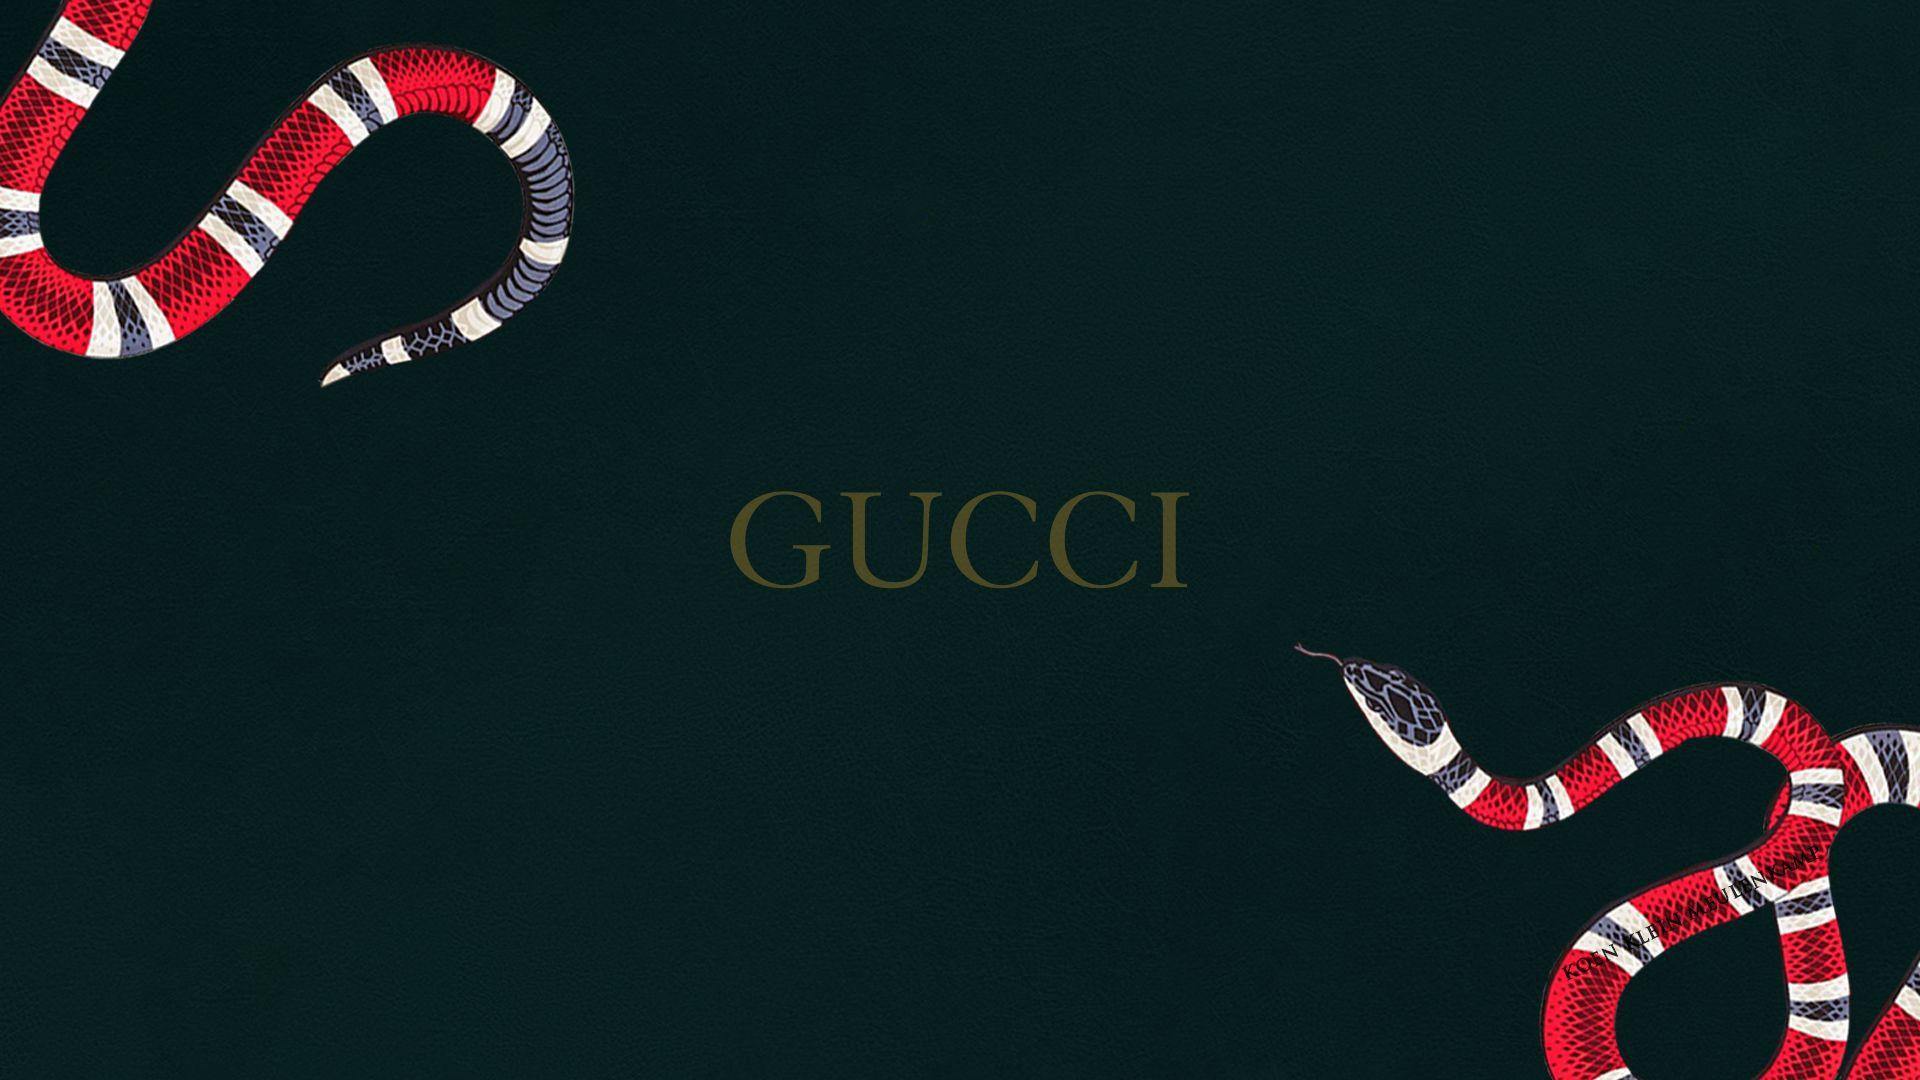 Gucci Snake Wallpapers - Wallpaper Cave